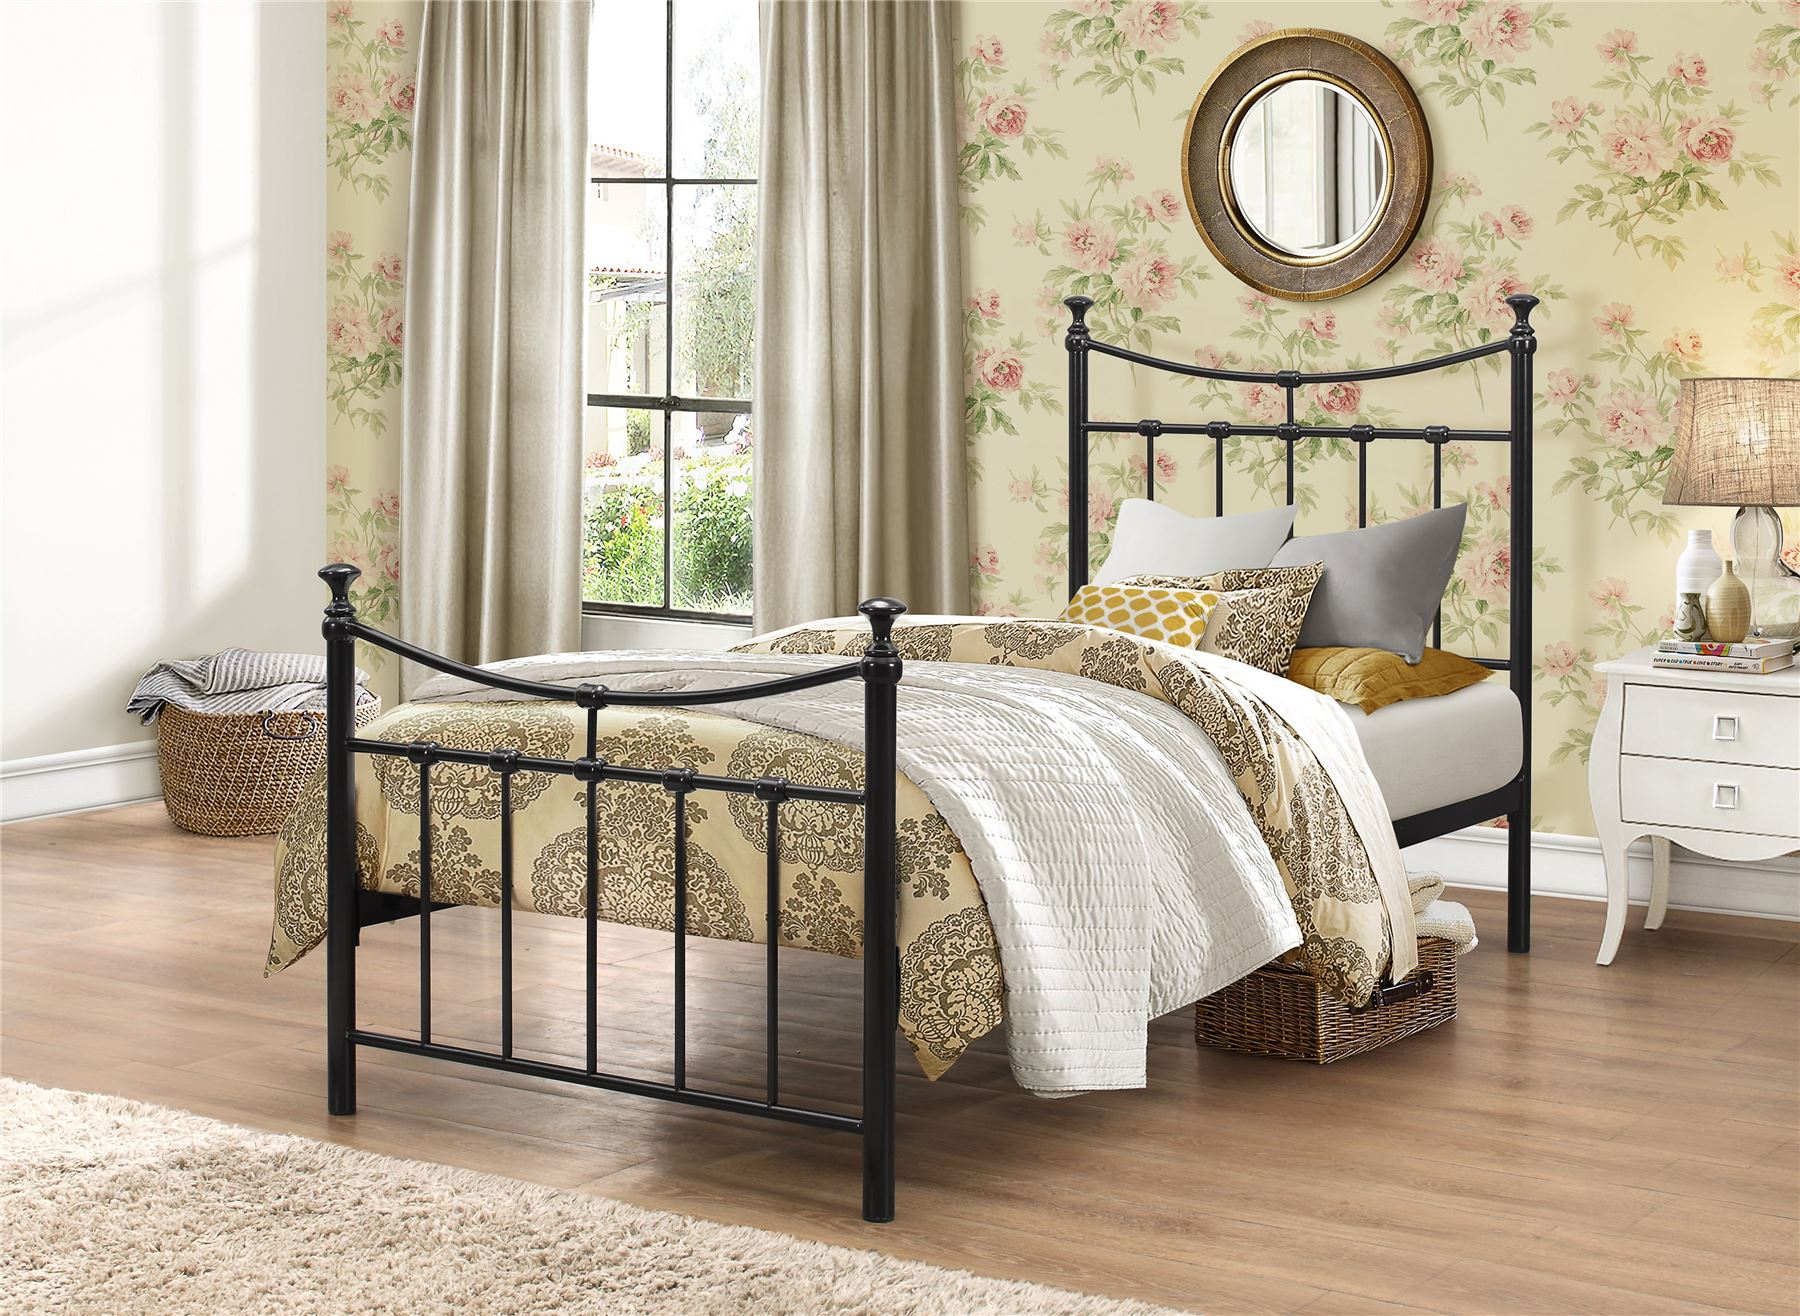 Emily 90cm 3FT Single black metal Bed Frame Bedstead with decorative finials